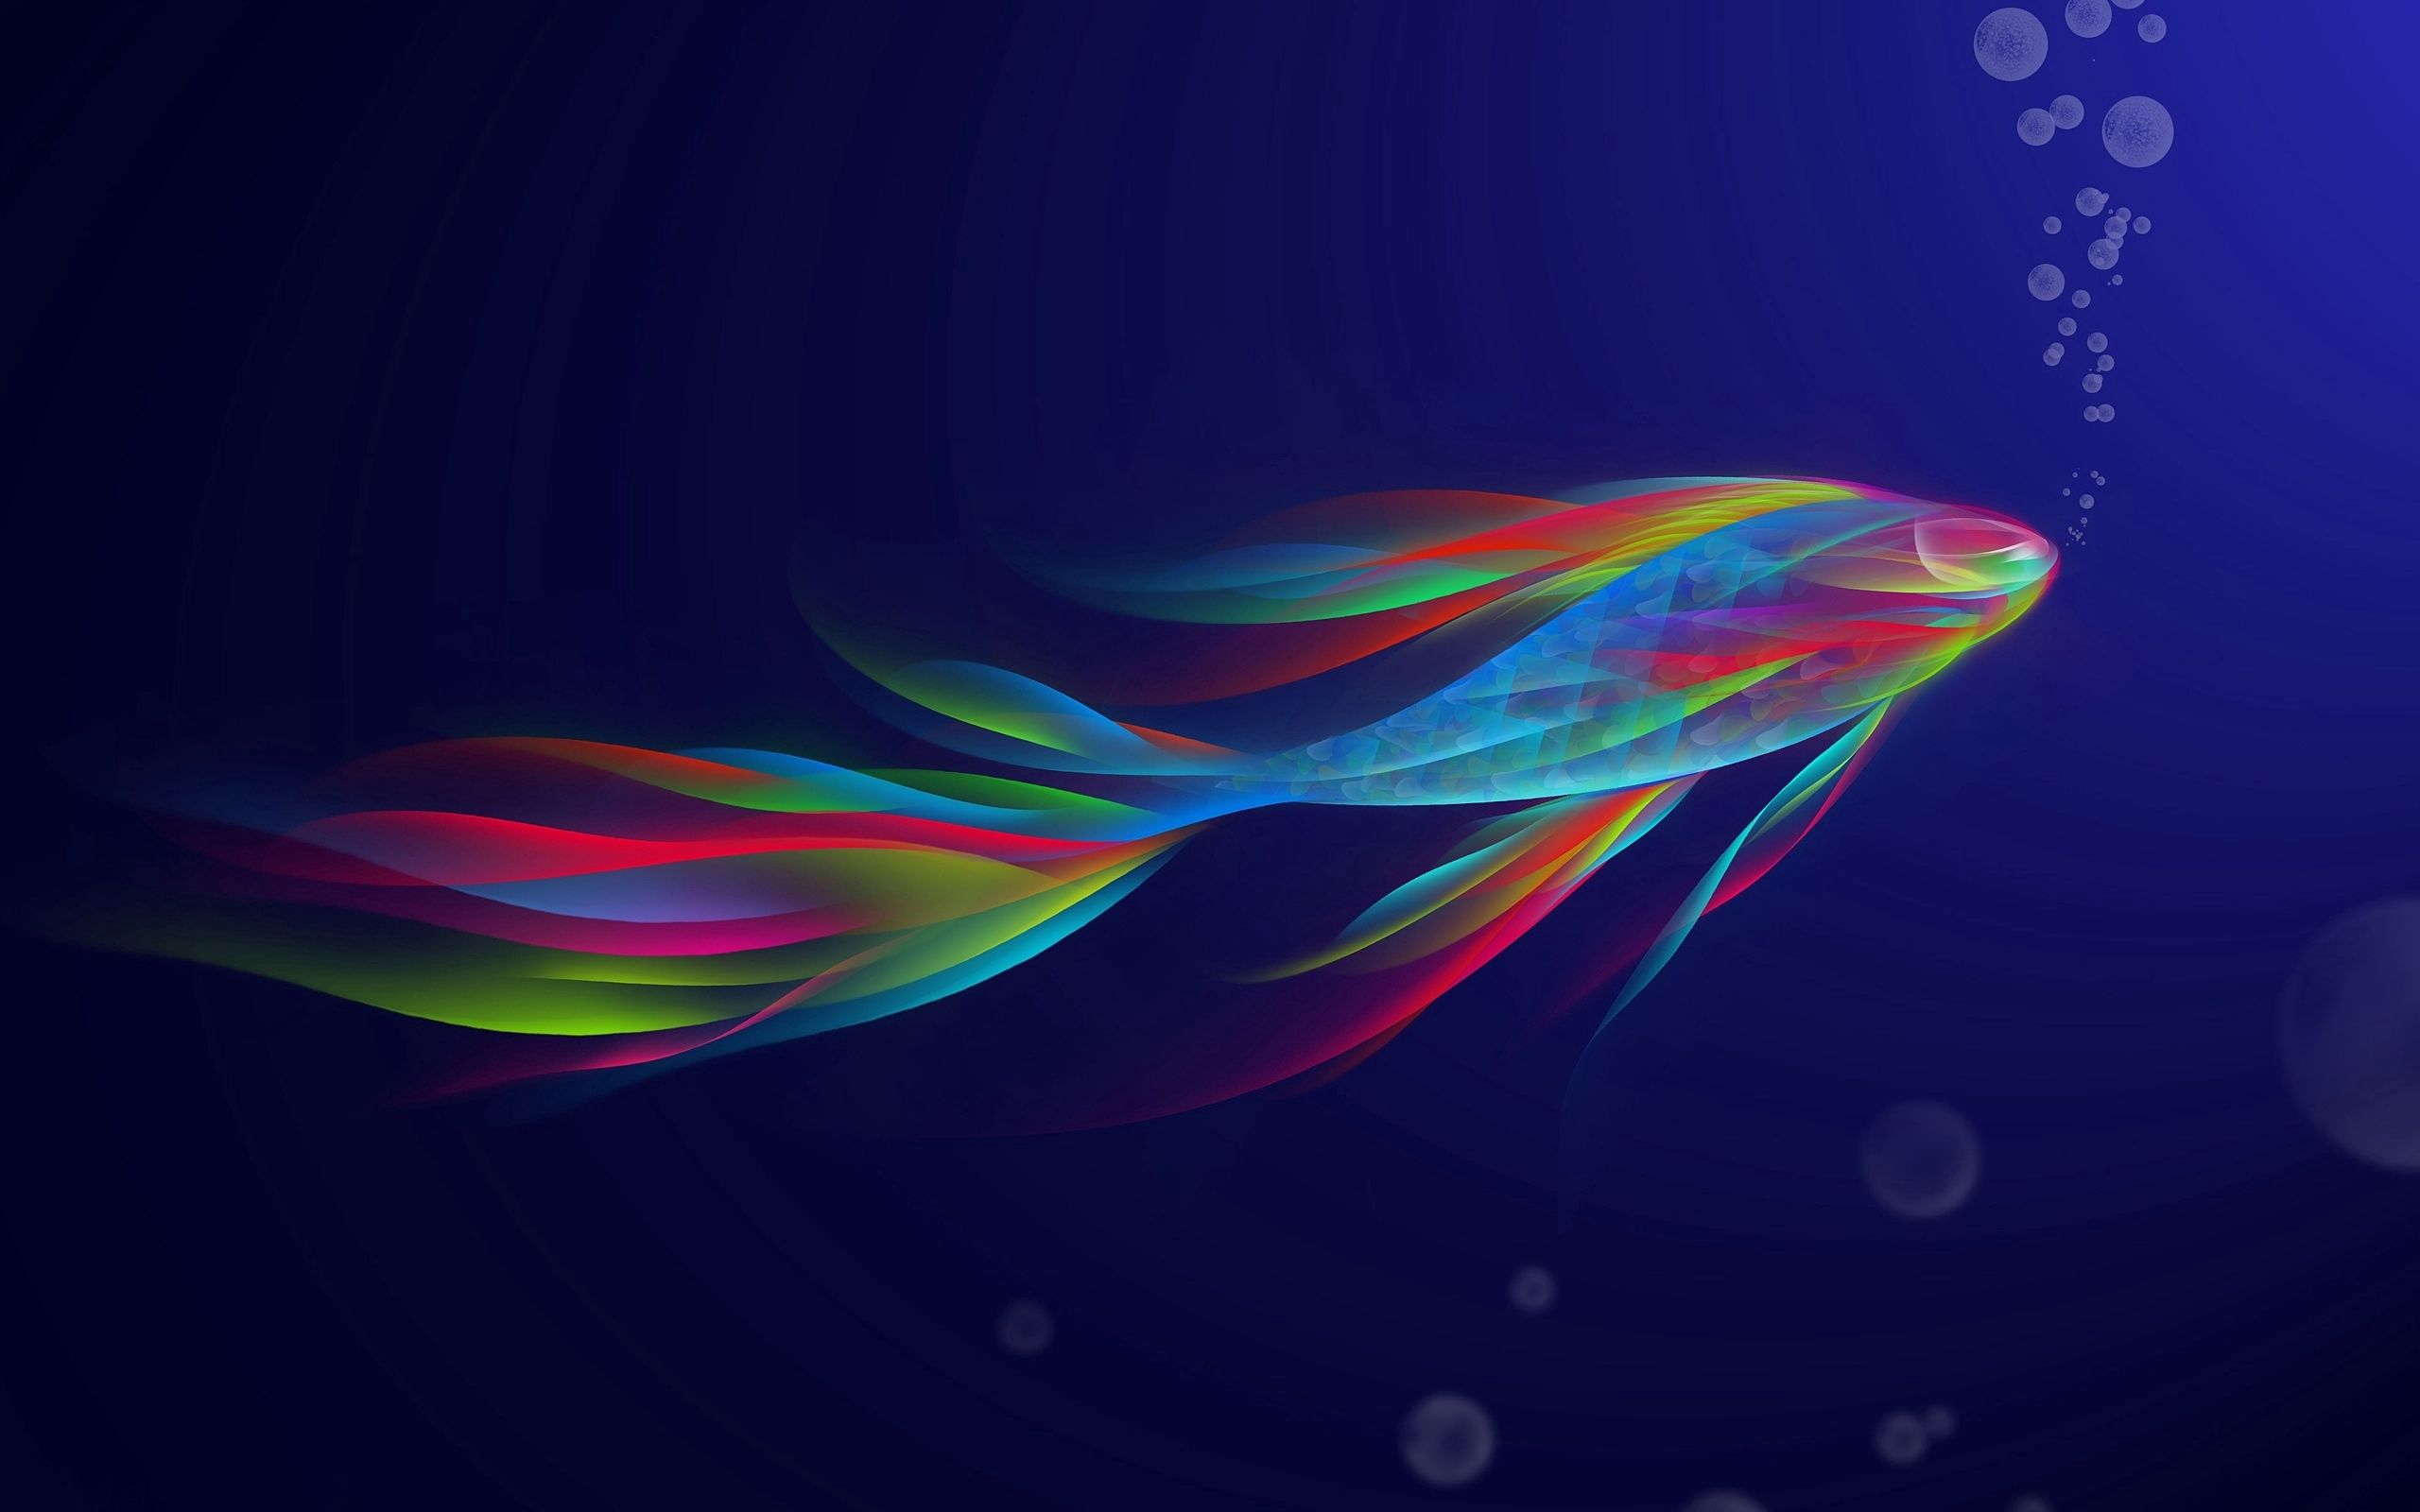 131243 download wallpaper Abstract, Swimming, Rainbow, Form, Iridescent, Fish screensavers and pictures for free